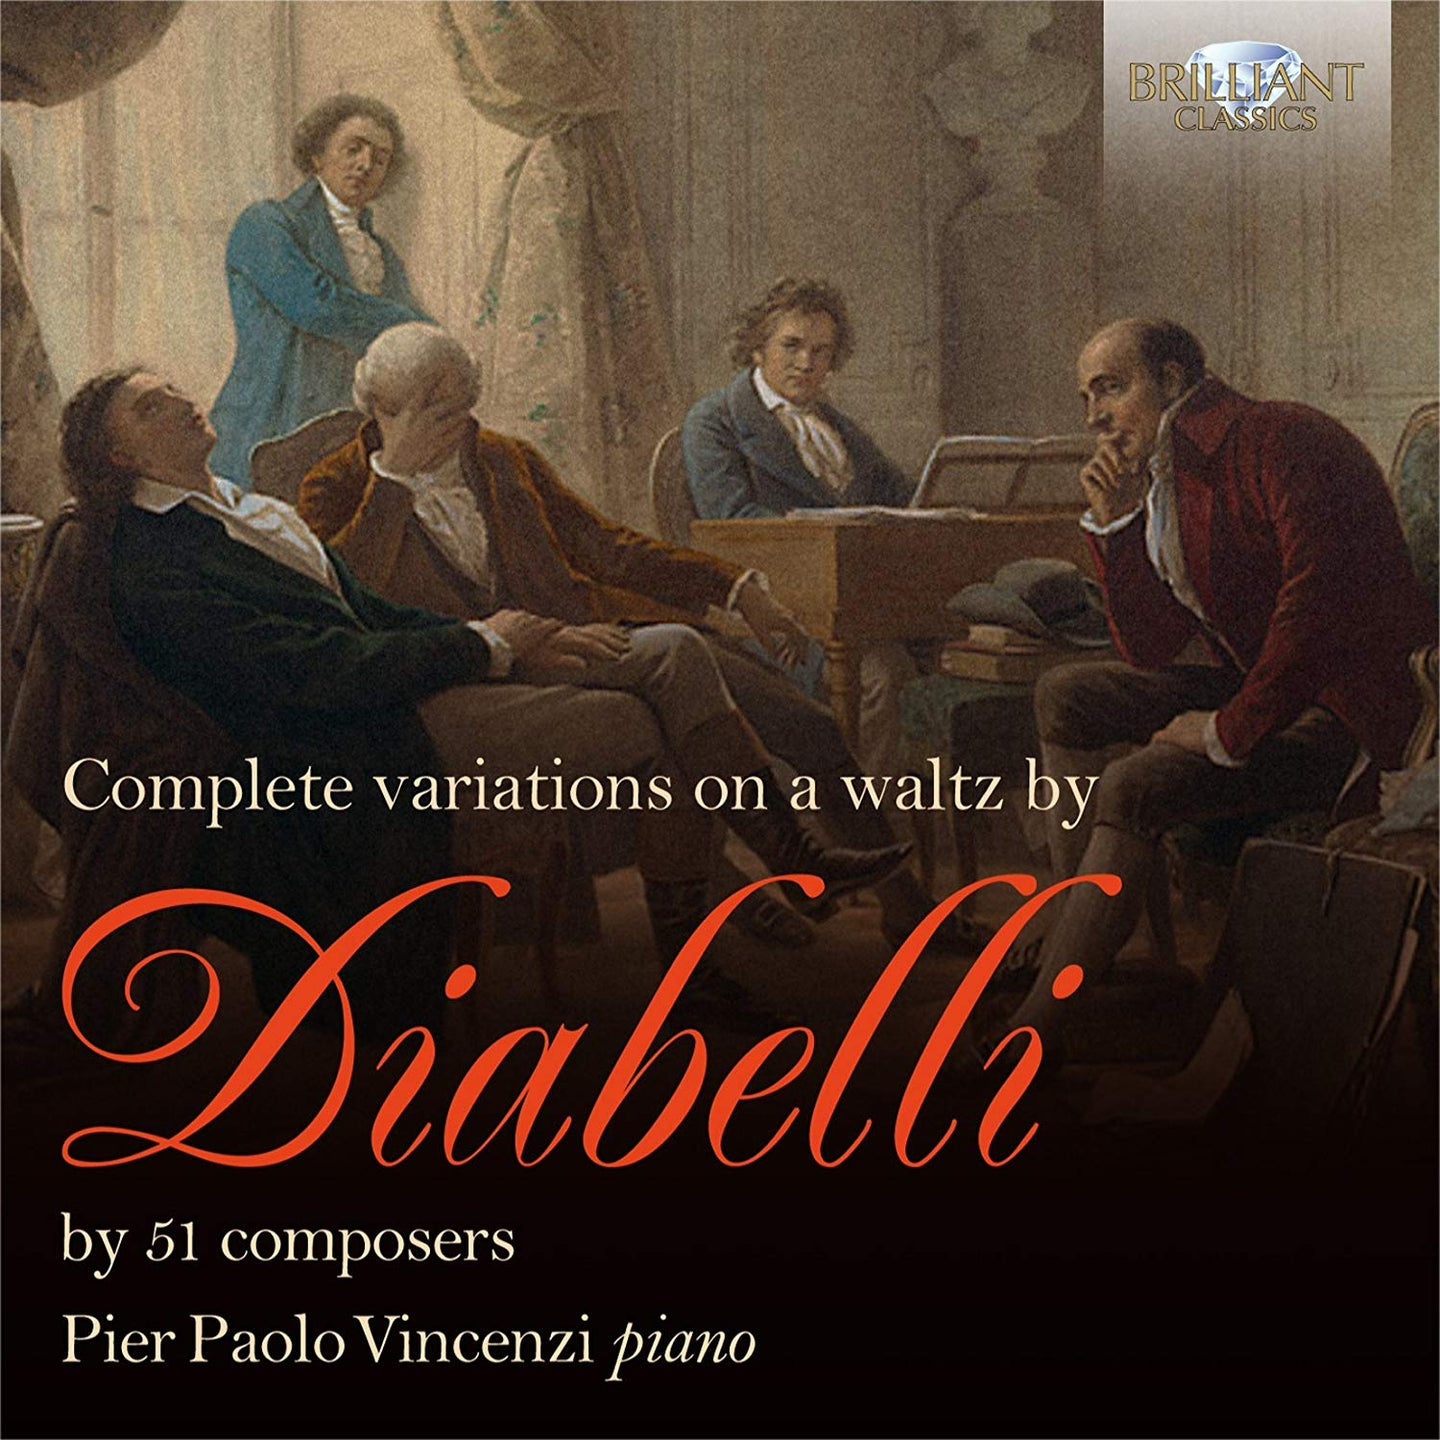 Complete Variations on a Waltz by Diabelli BY 51 Composers - Pier Paolo Vincenzi (2 CDS)